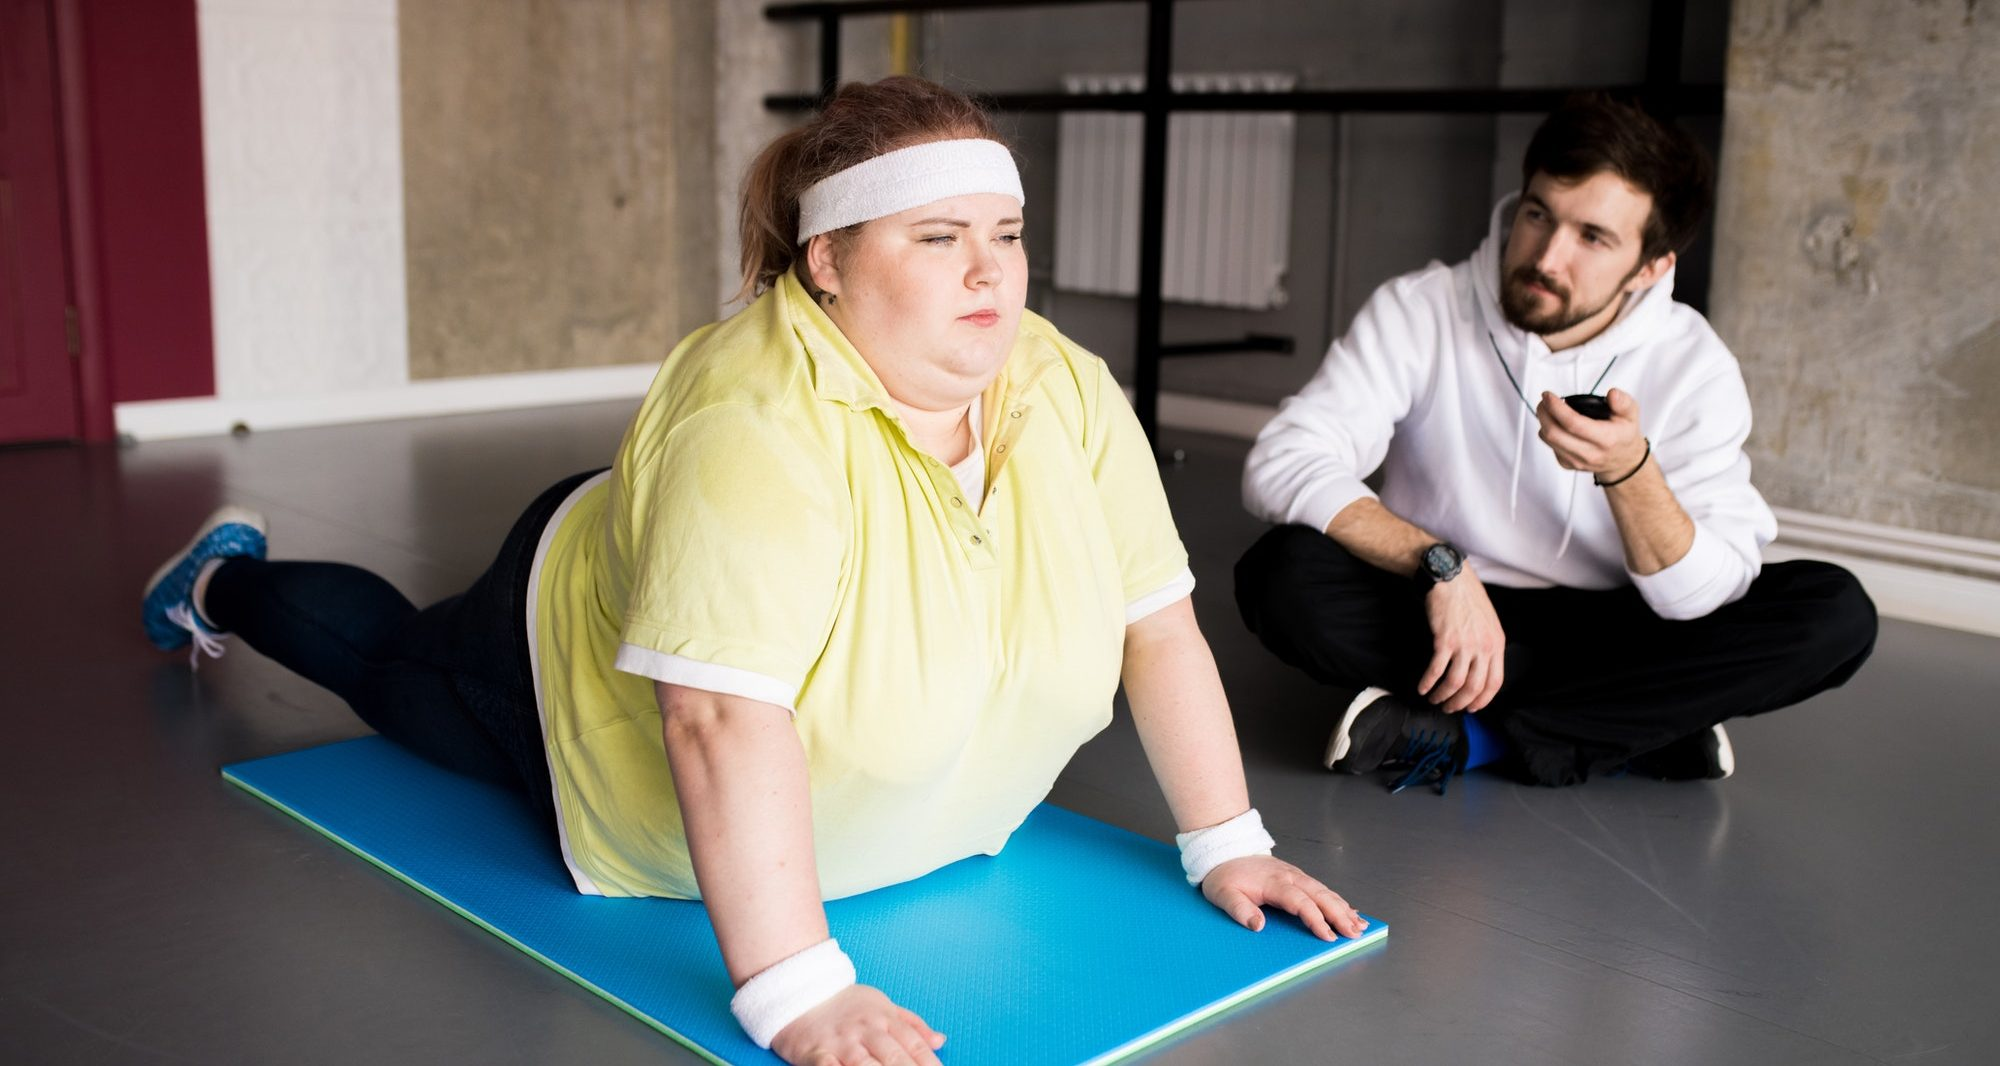 health risks of being overweight